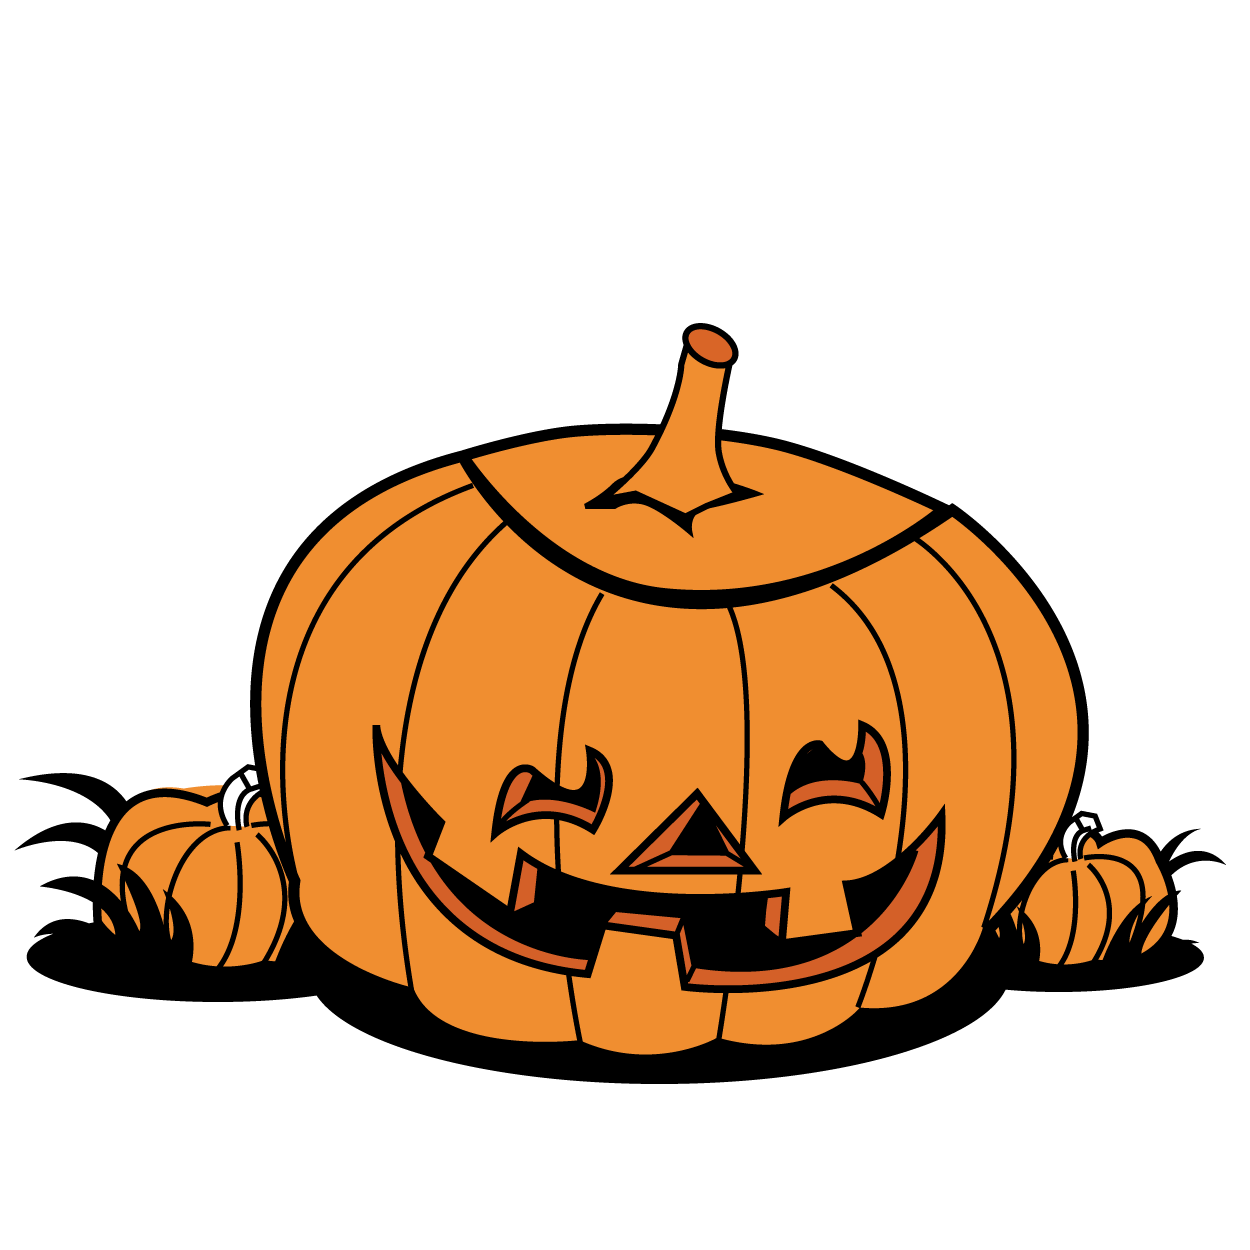 Pumpkin patch clipart png graphic transparent download Halloween pumpkin patch clip art free clipart images 2 - Clipartix graphic transparent download